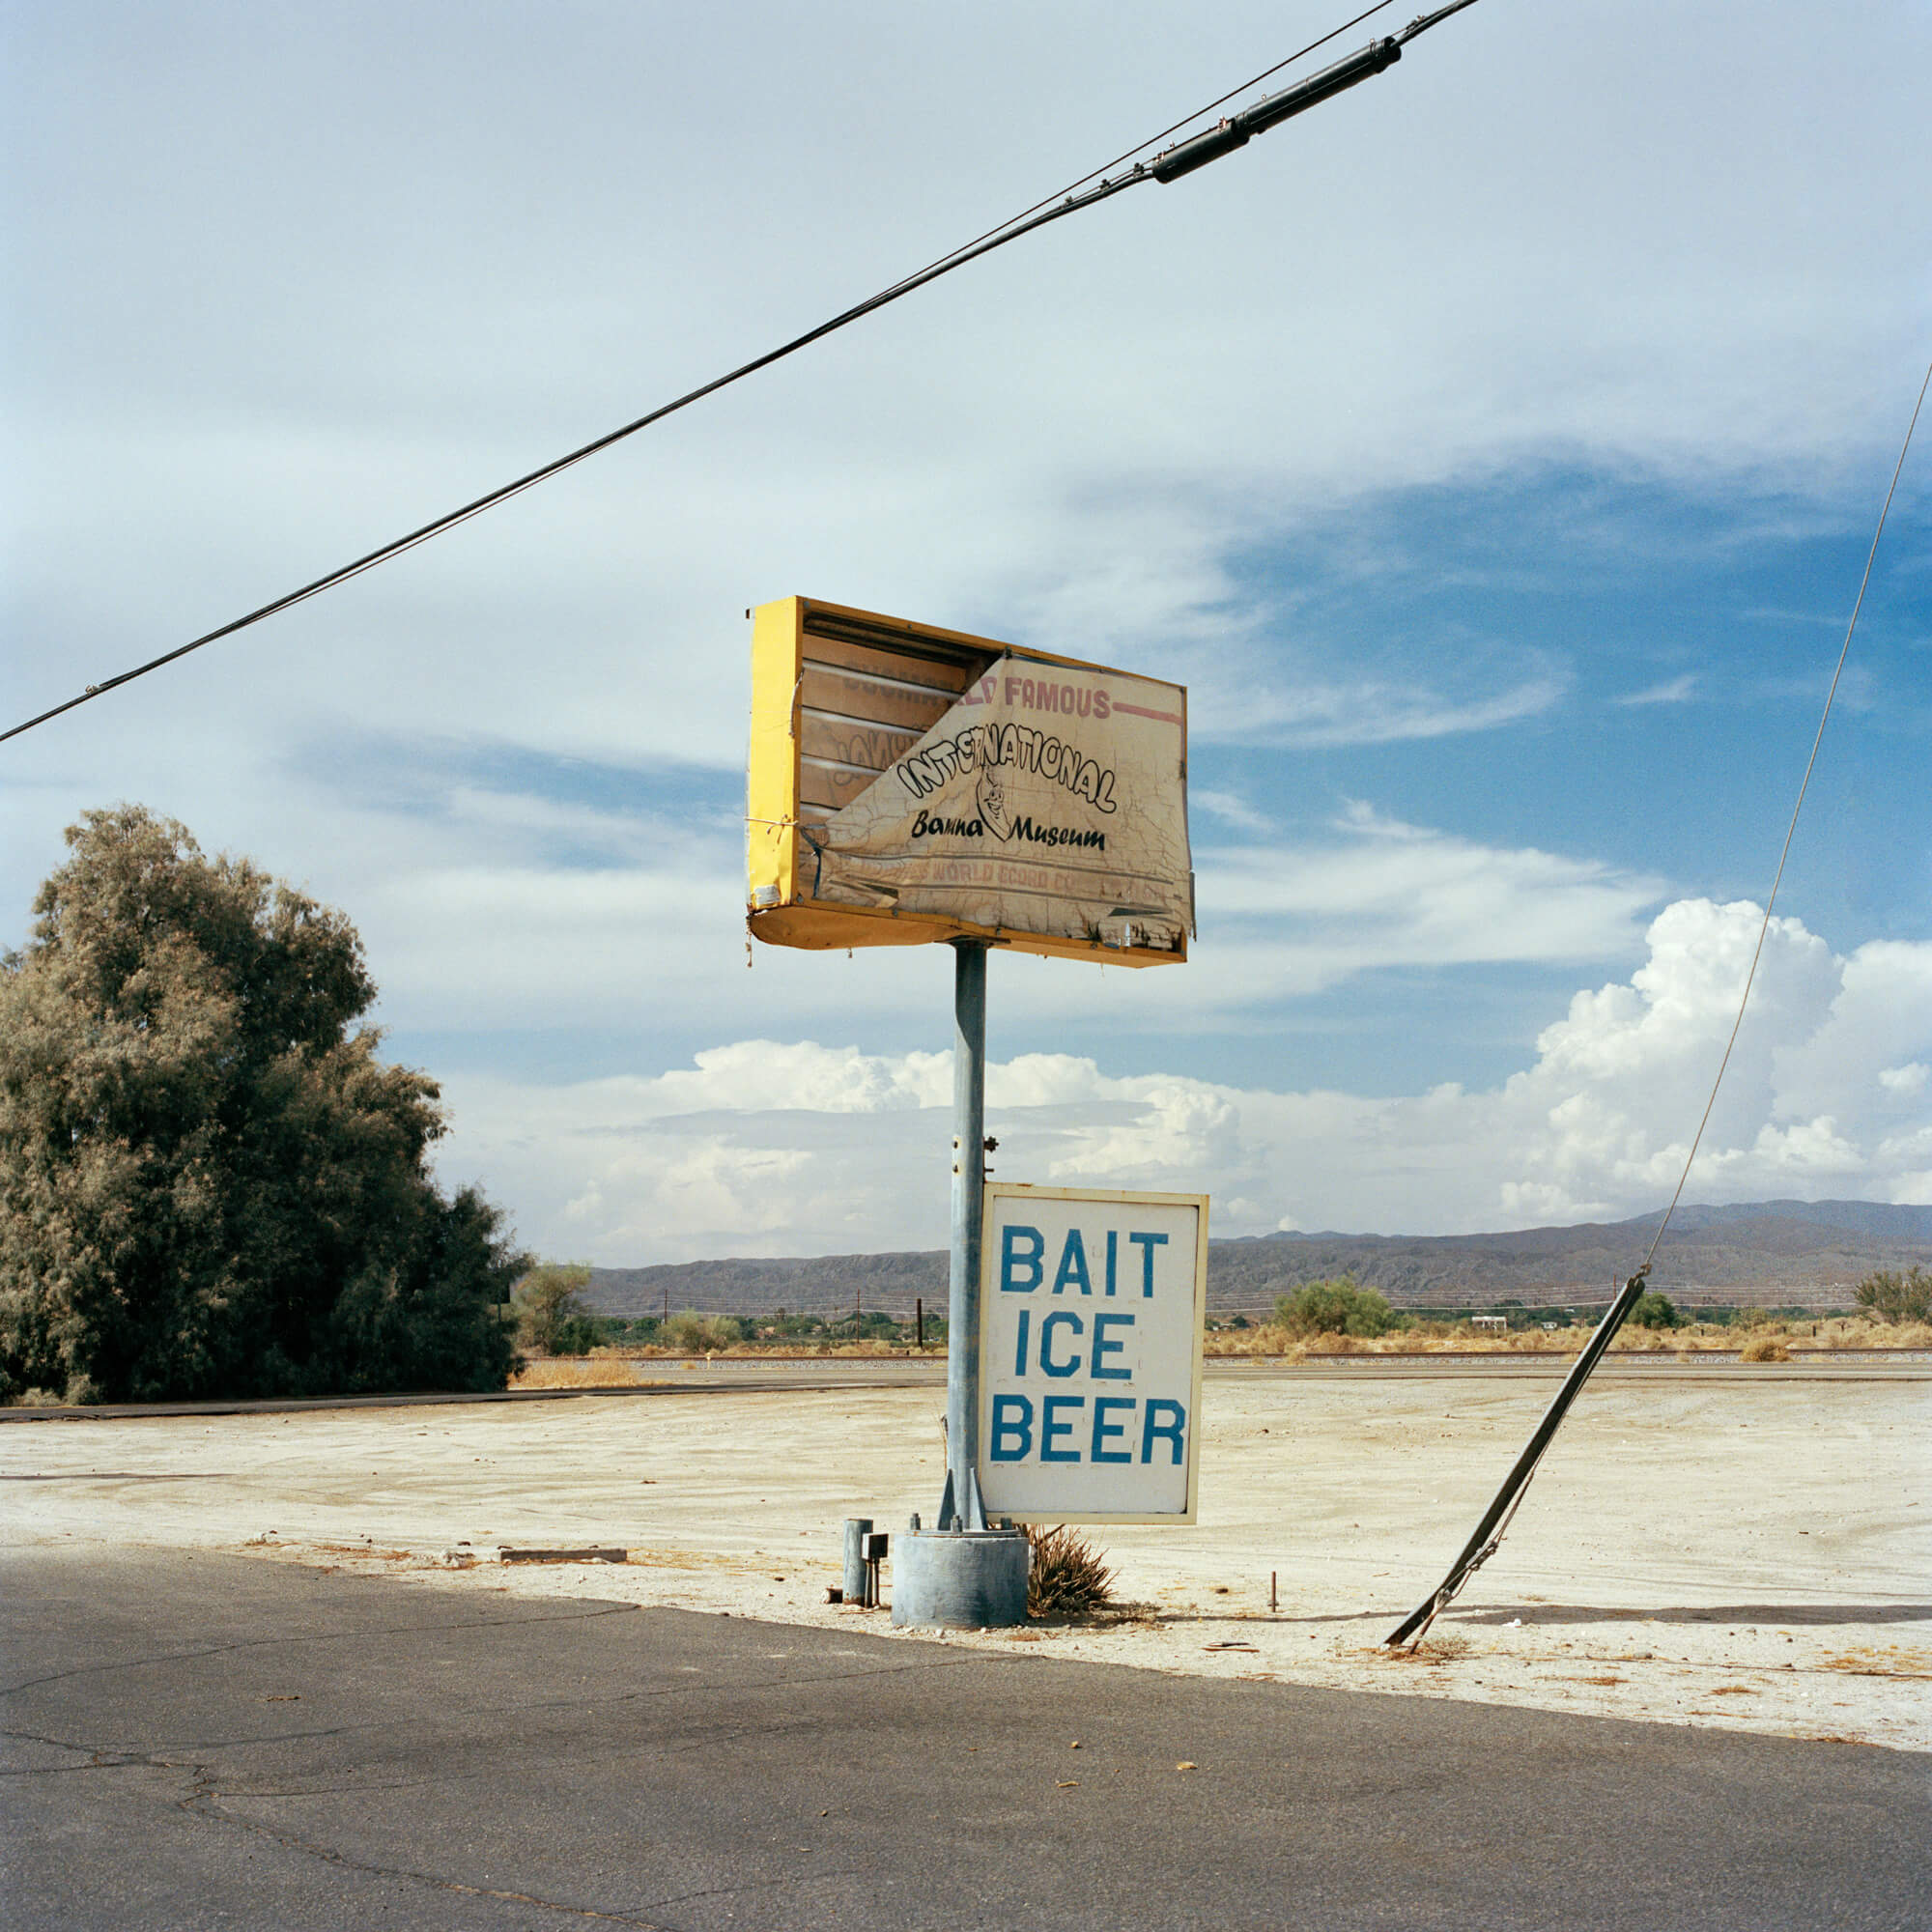 Phoebe Somerfield - Grapefruit Boulevard the south west collective of photography gas station in America